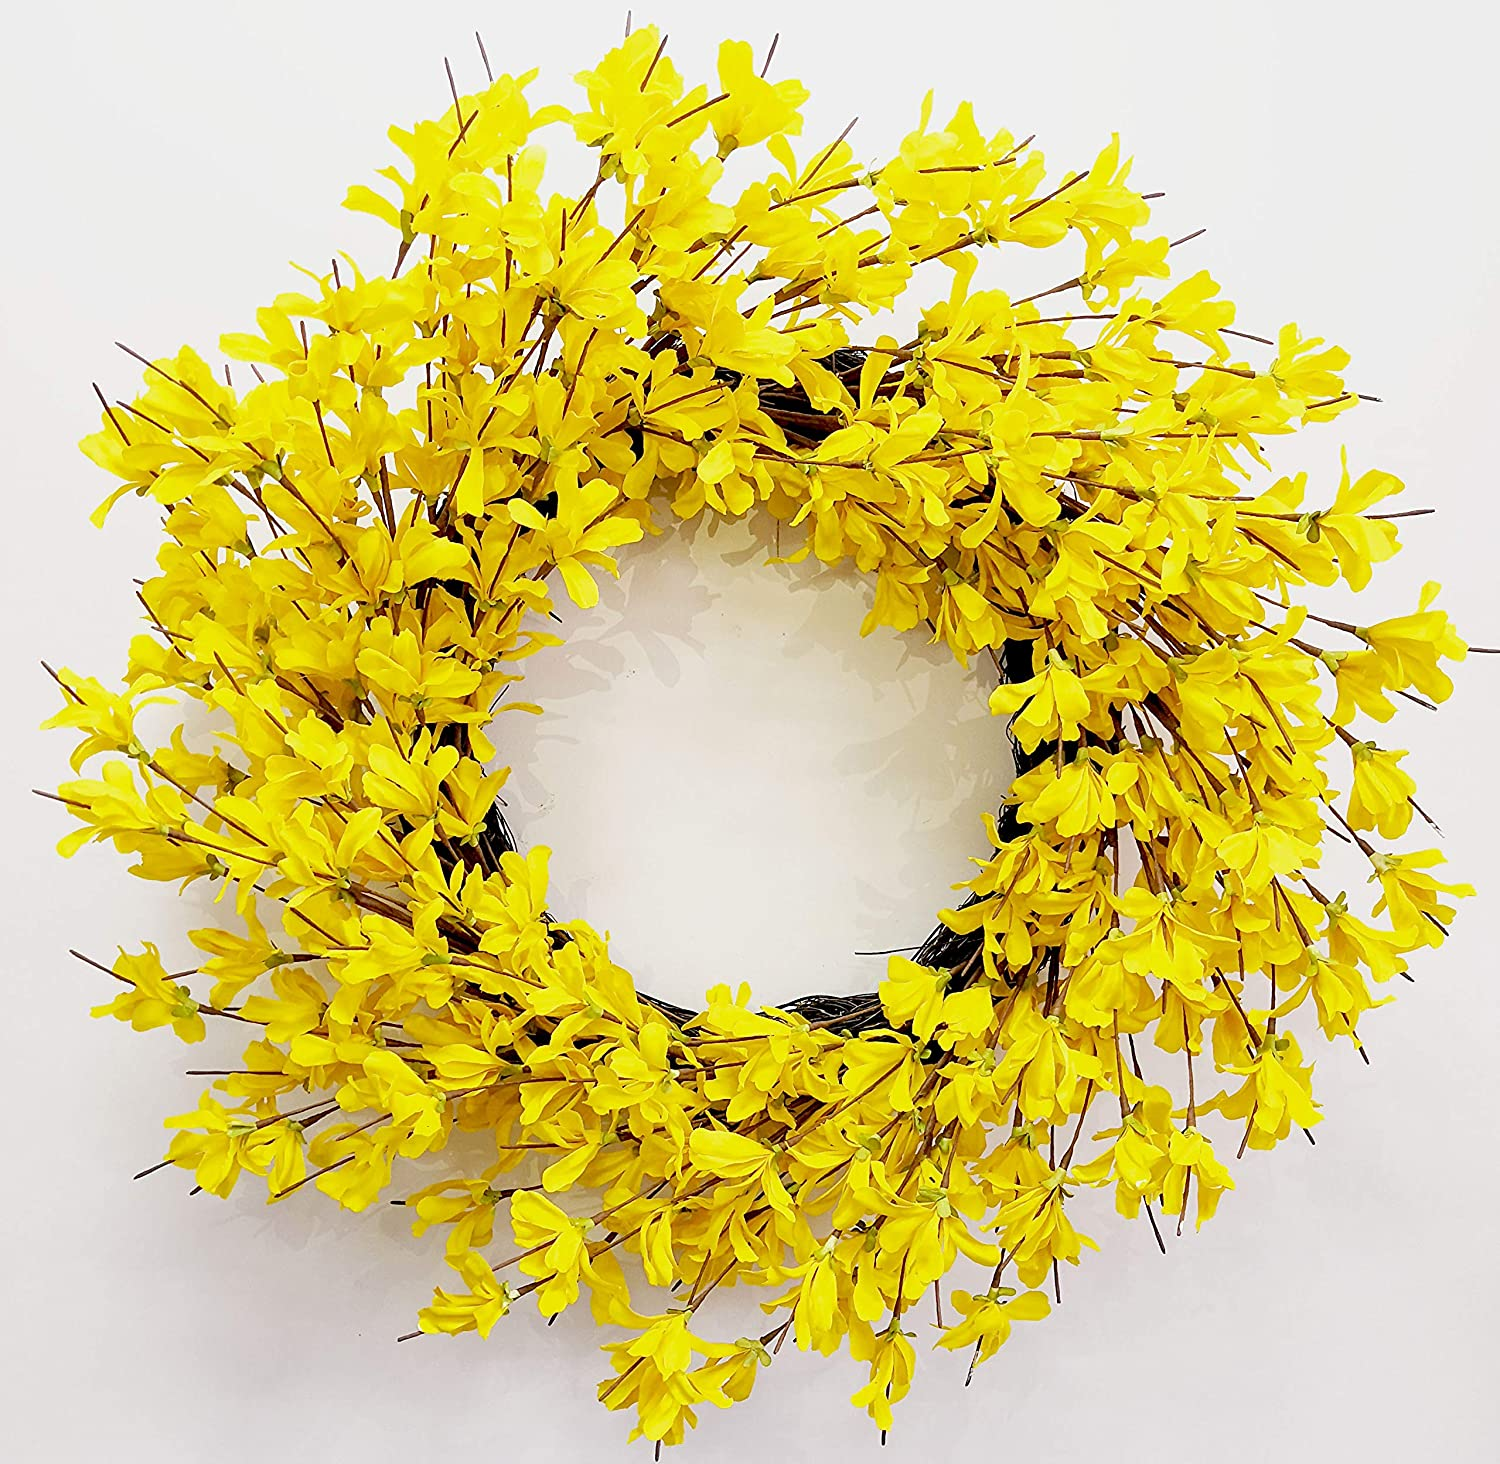 Amazon Com Huashen 24 Inch Yellow Forsythia Door Wreath For Rustic Summer Fall Farmhouse Front Door Decor Wreath Yellow Home Kitchen